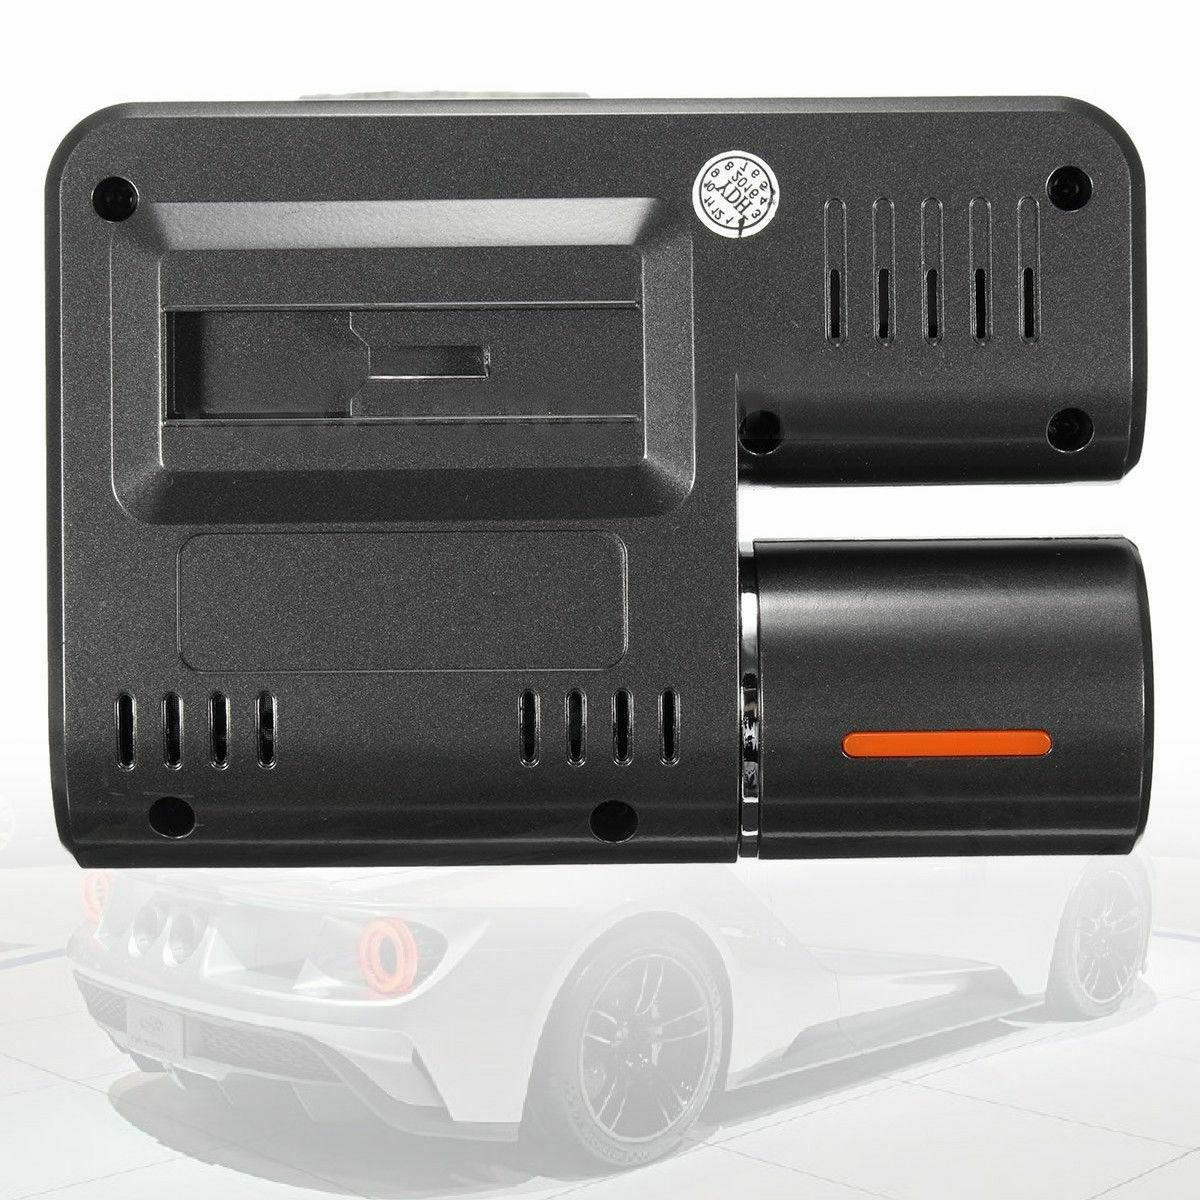 HD Car DVR Cam Vehicle Video Recorder